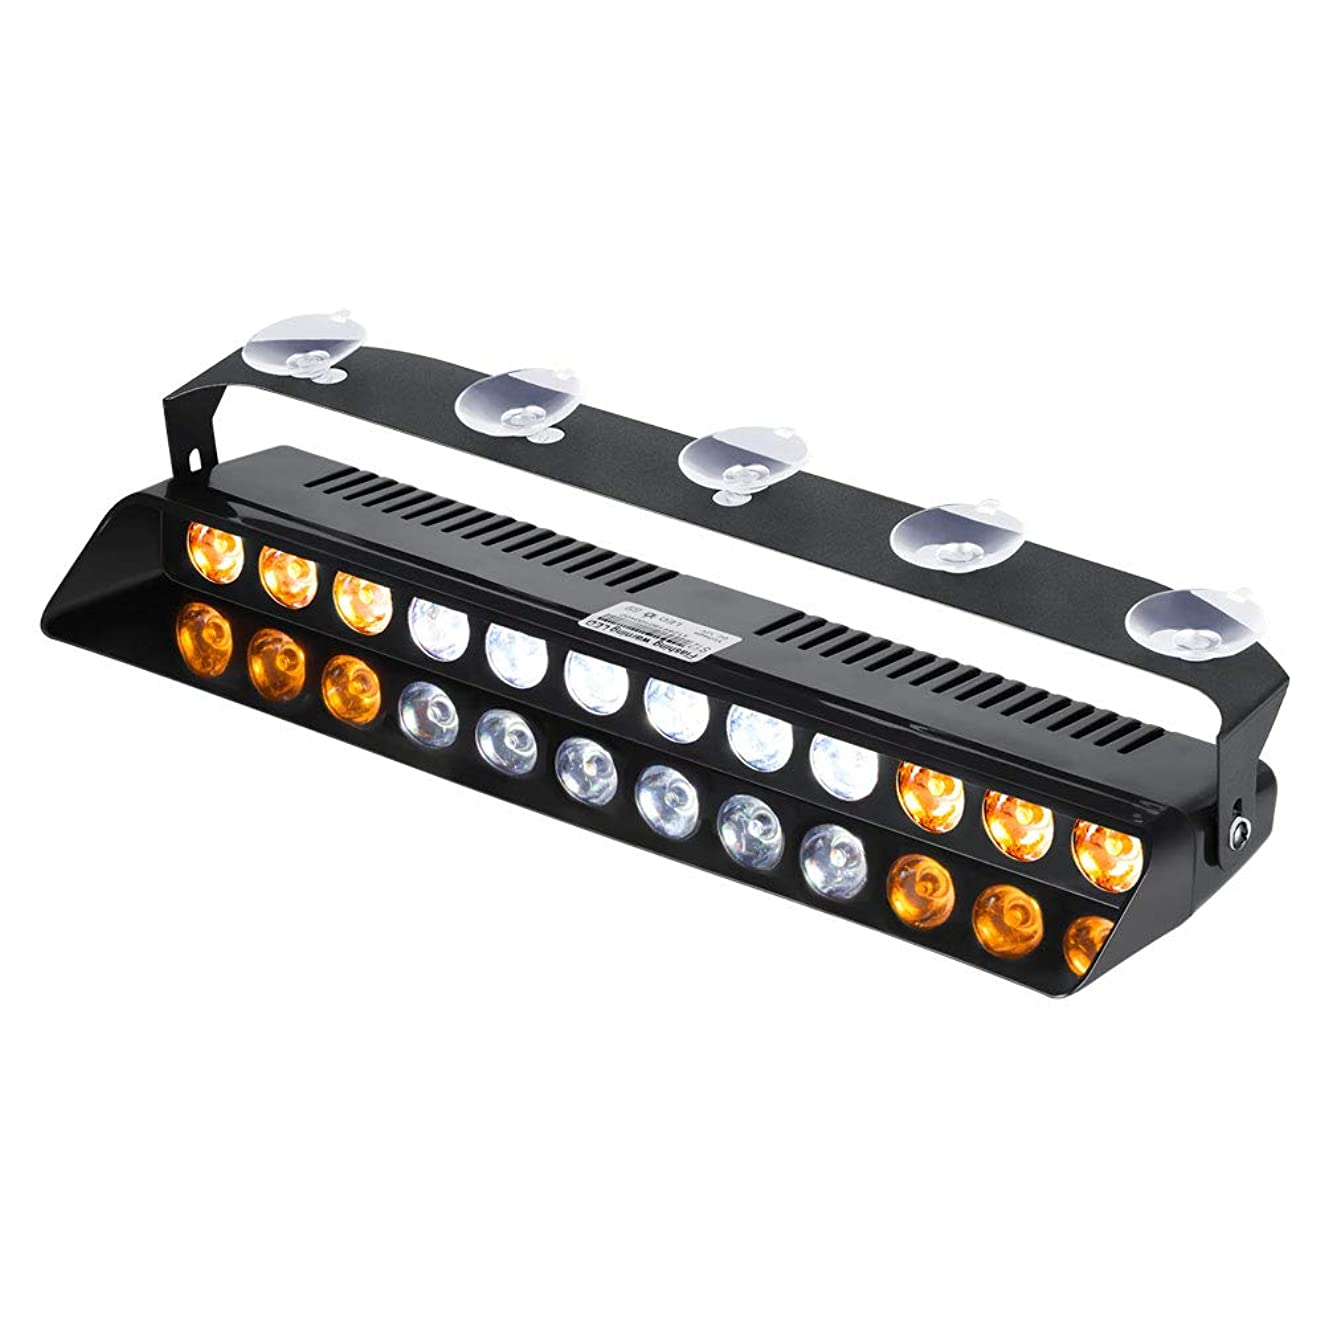 WOWTOU Amber White Warning Light 12W LED 16 Strobe Flashing Patterns for POV, Utility Vehicle, Construction Vehicle and Tow Truck